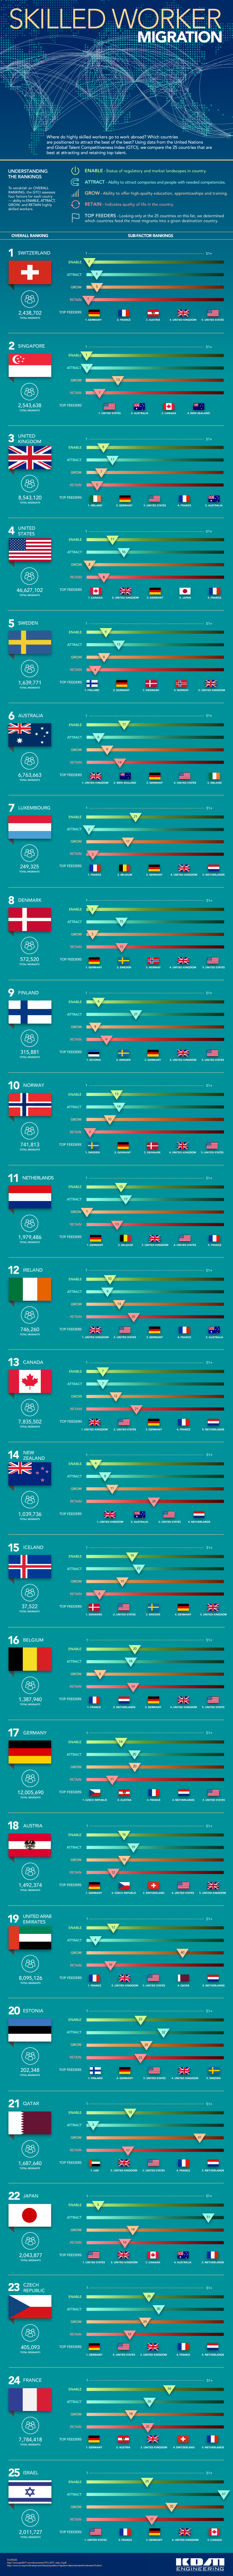 Global Talent Competitiveness Index: The Top 25 Countries - Infographic